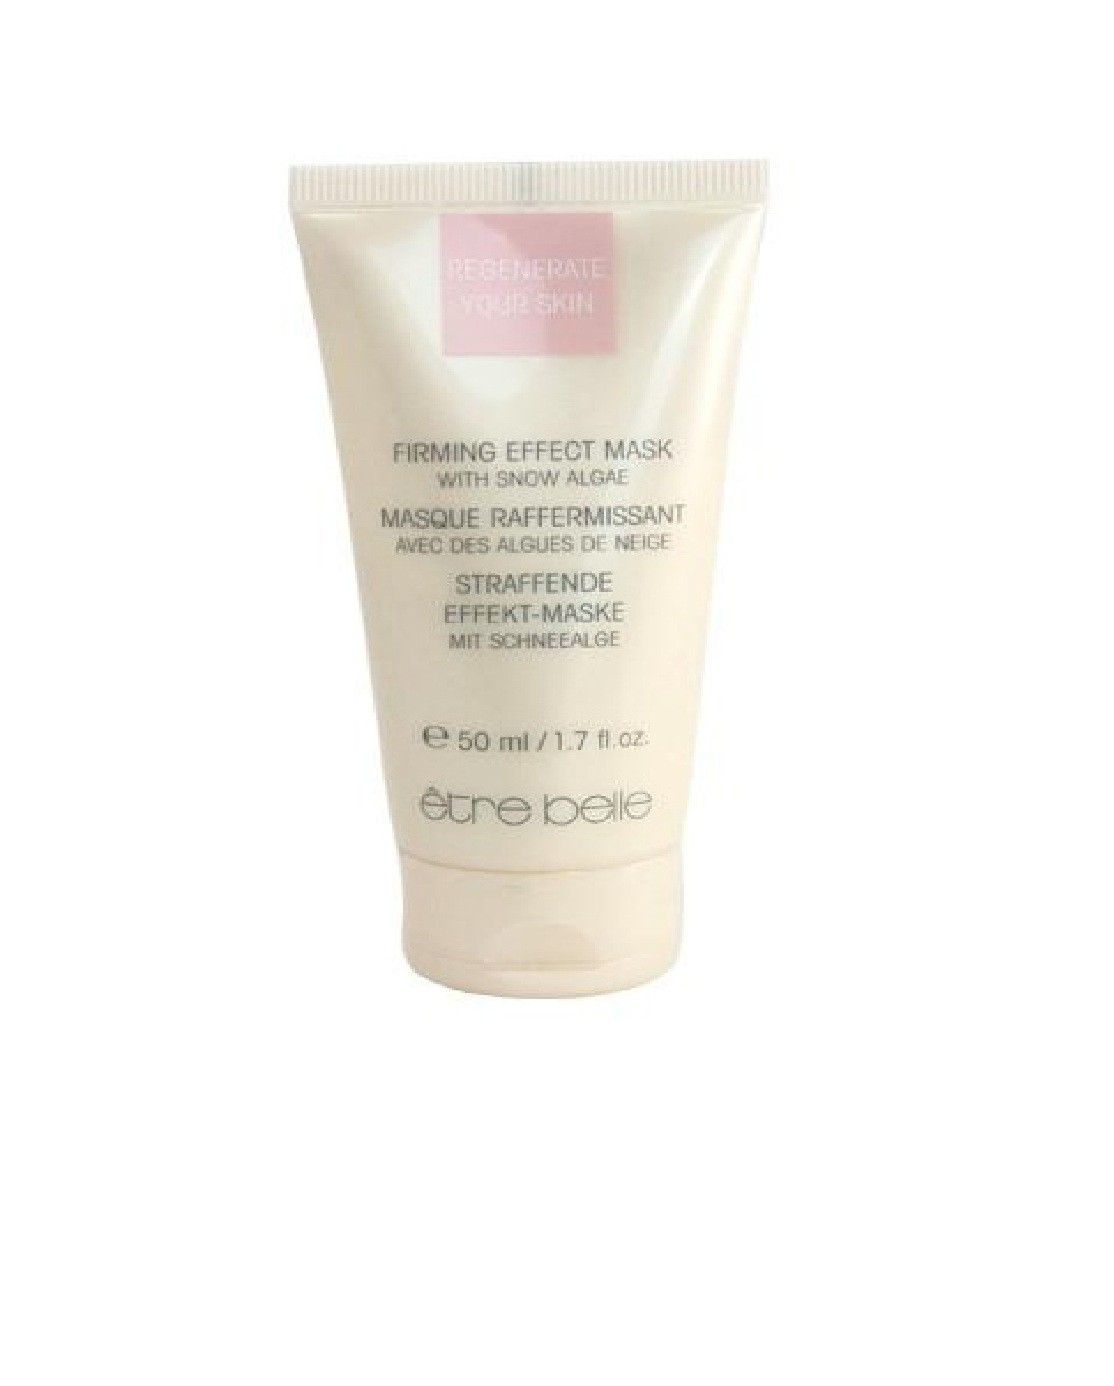 Skin Therapy Firming Effect Mask 50ml